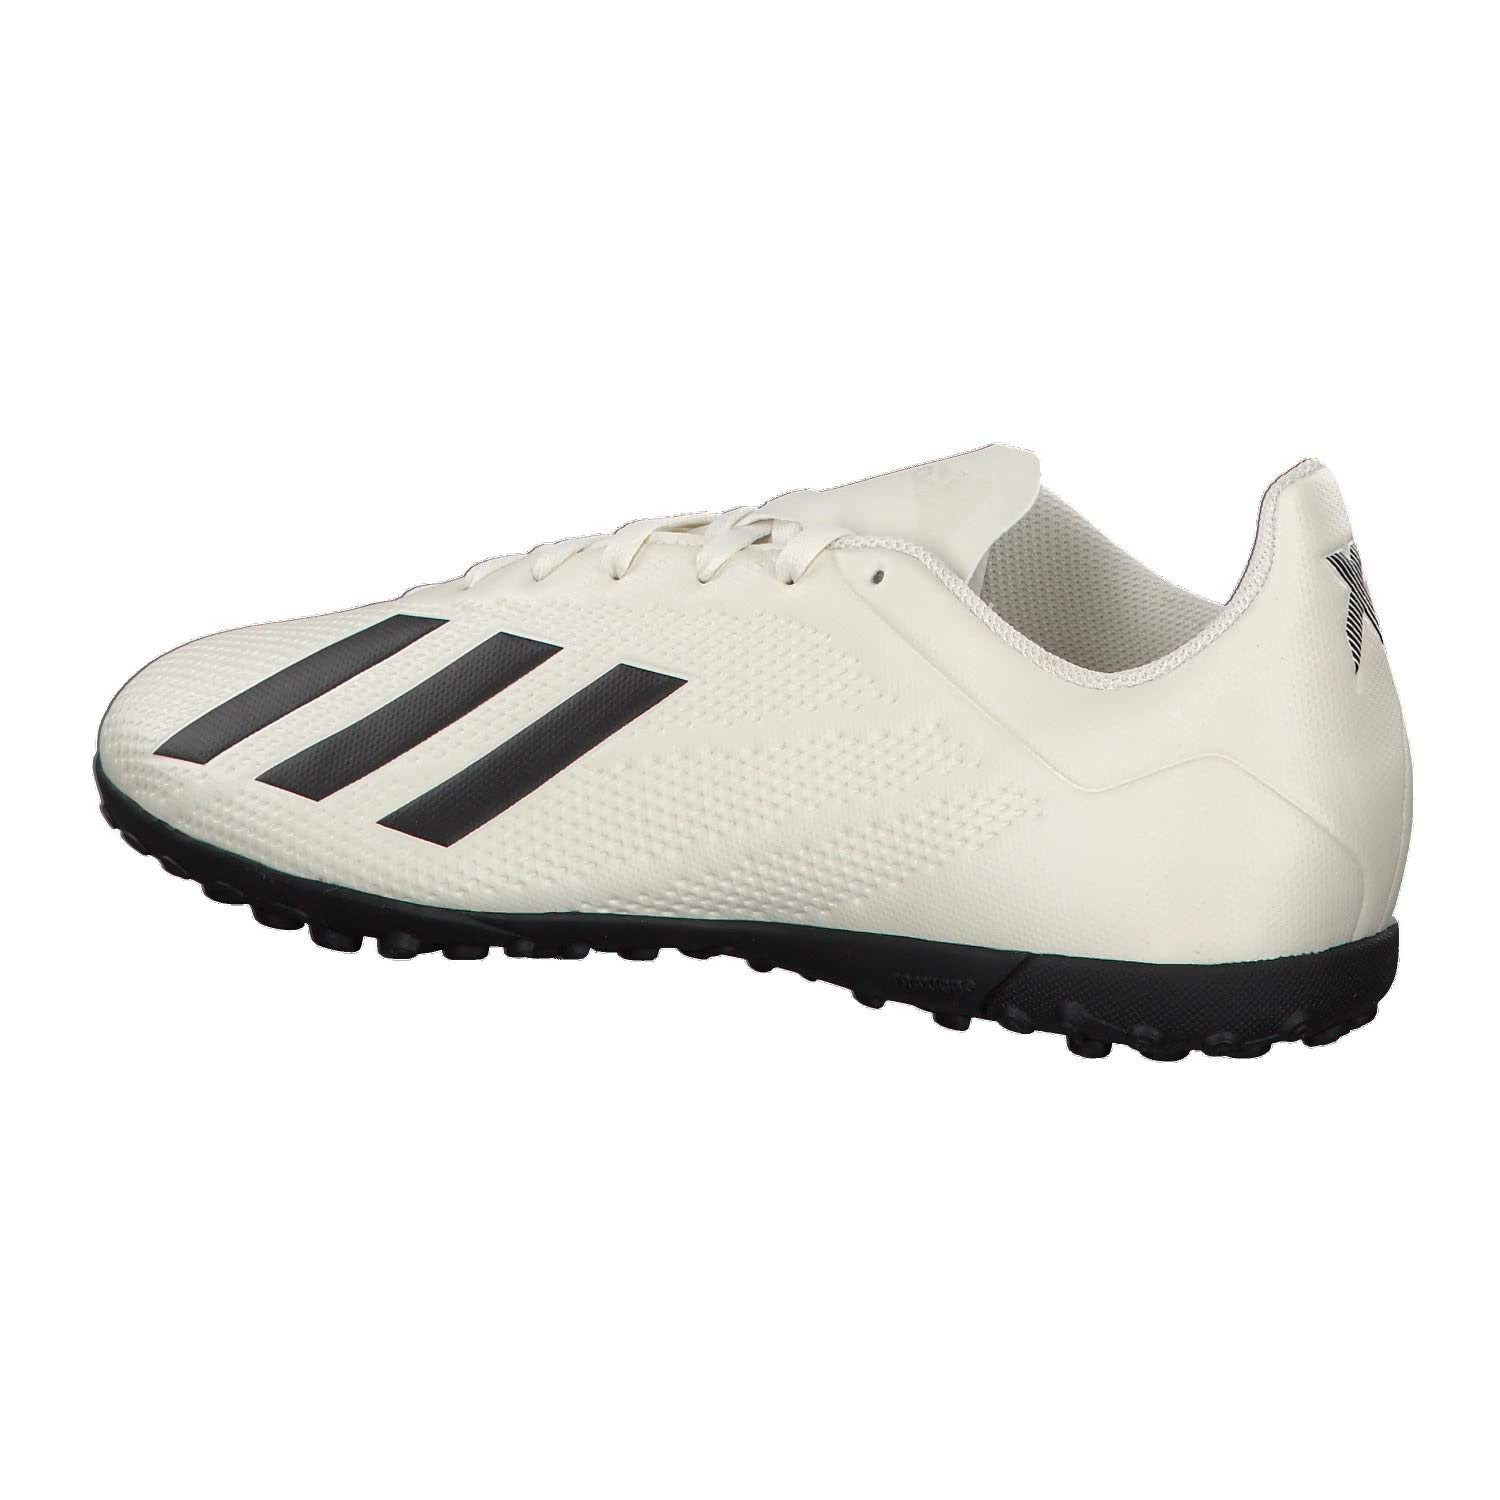 uk availability 35cec 6e262 adidas X Tango 18.4 TF, Chaussures de Football Homme